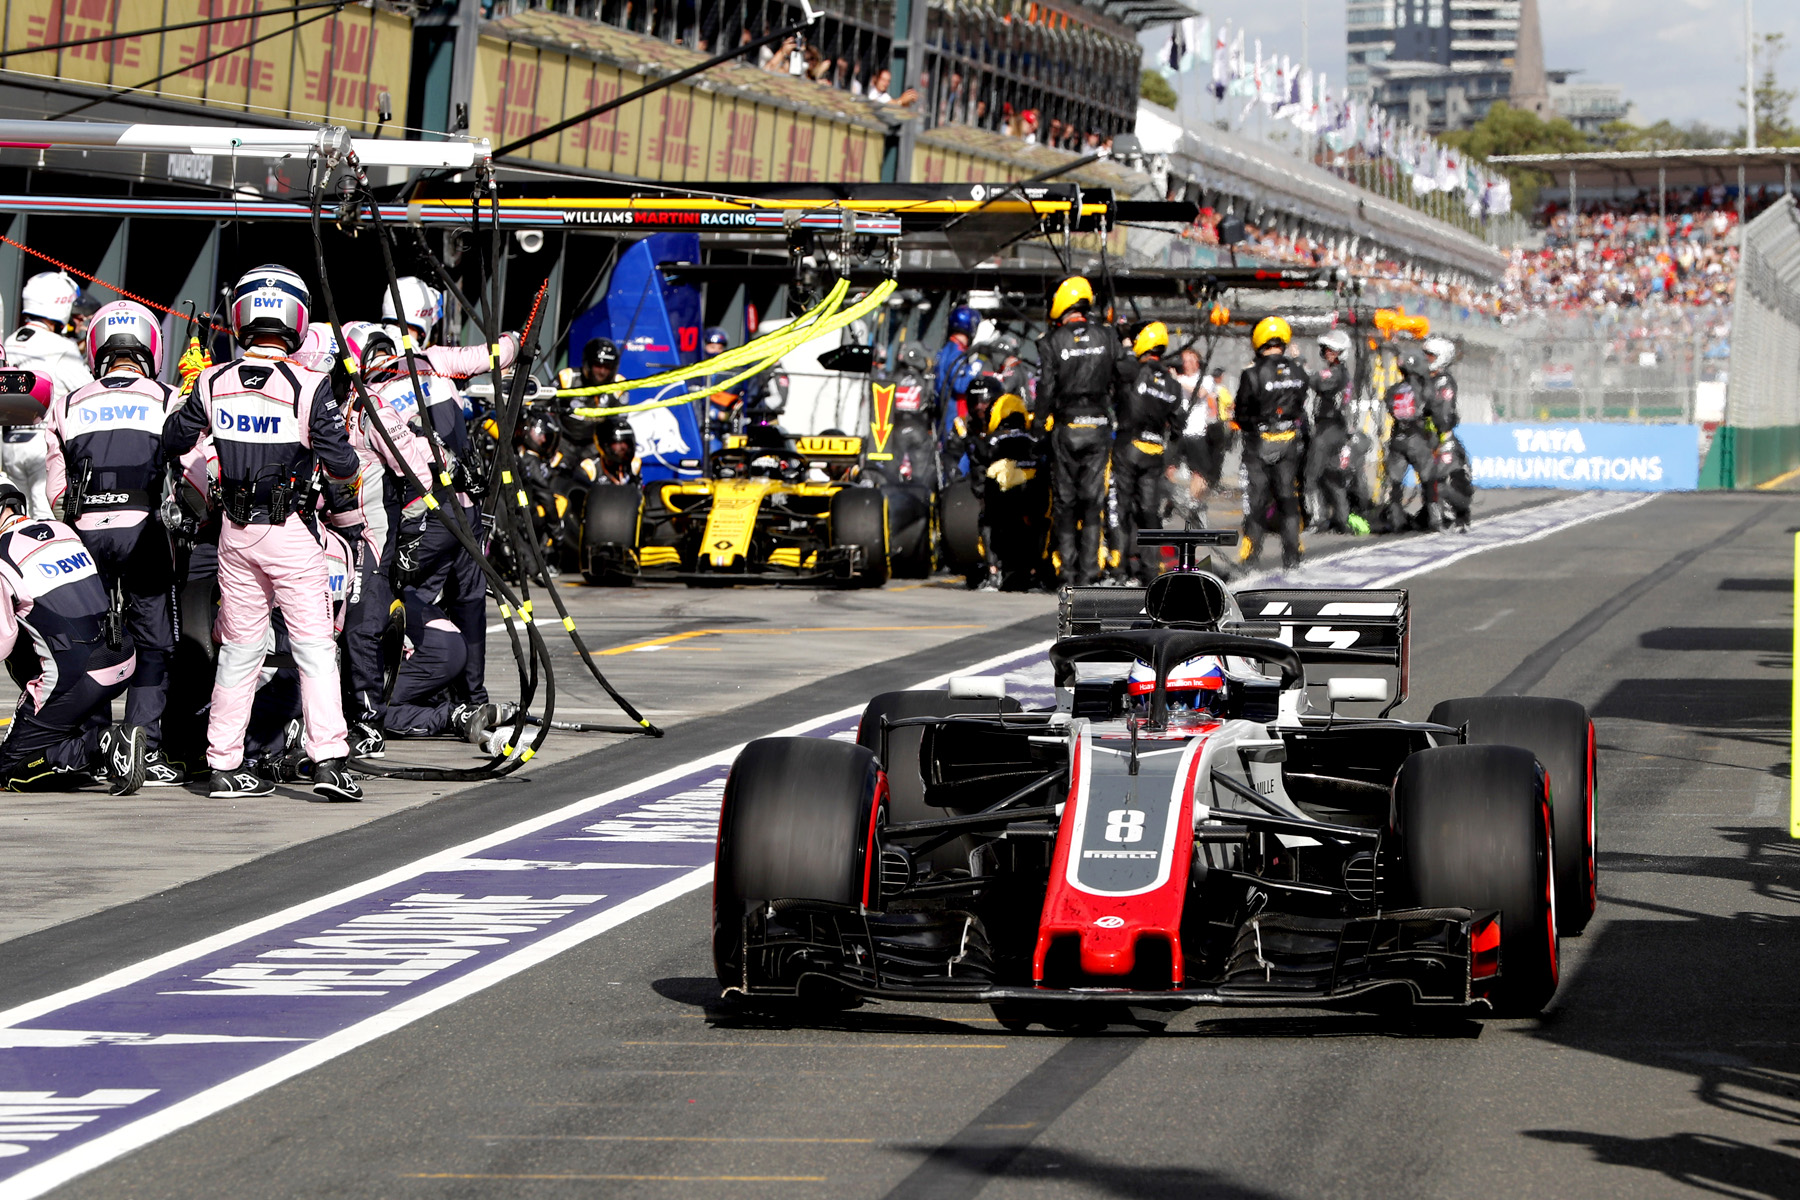 Romain Grosjean exits the pits at the Australian Grand Prix.